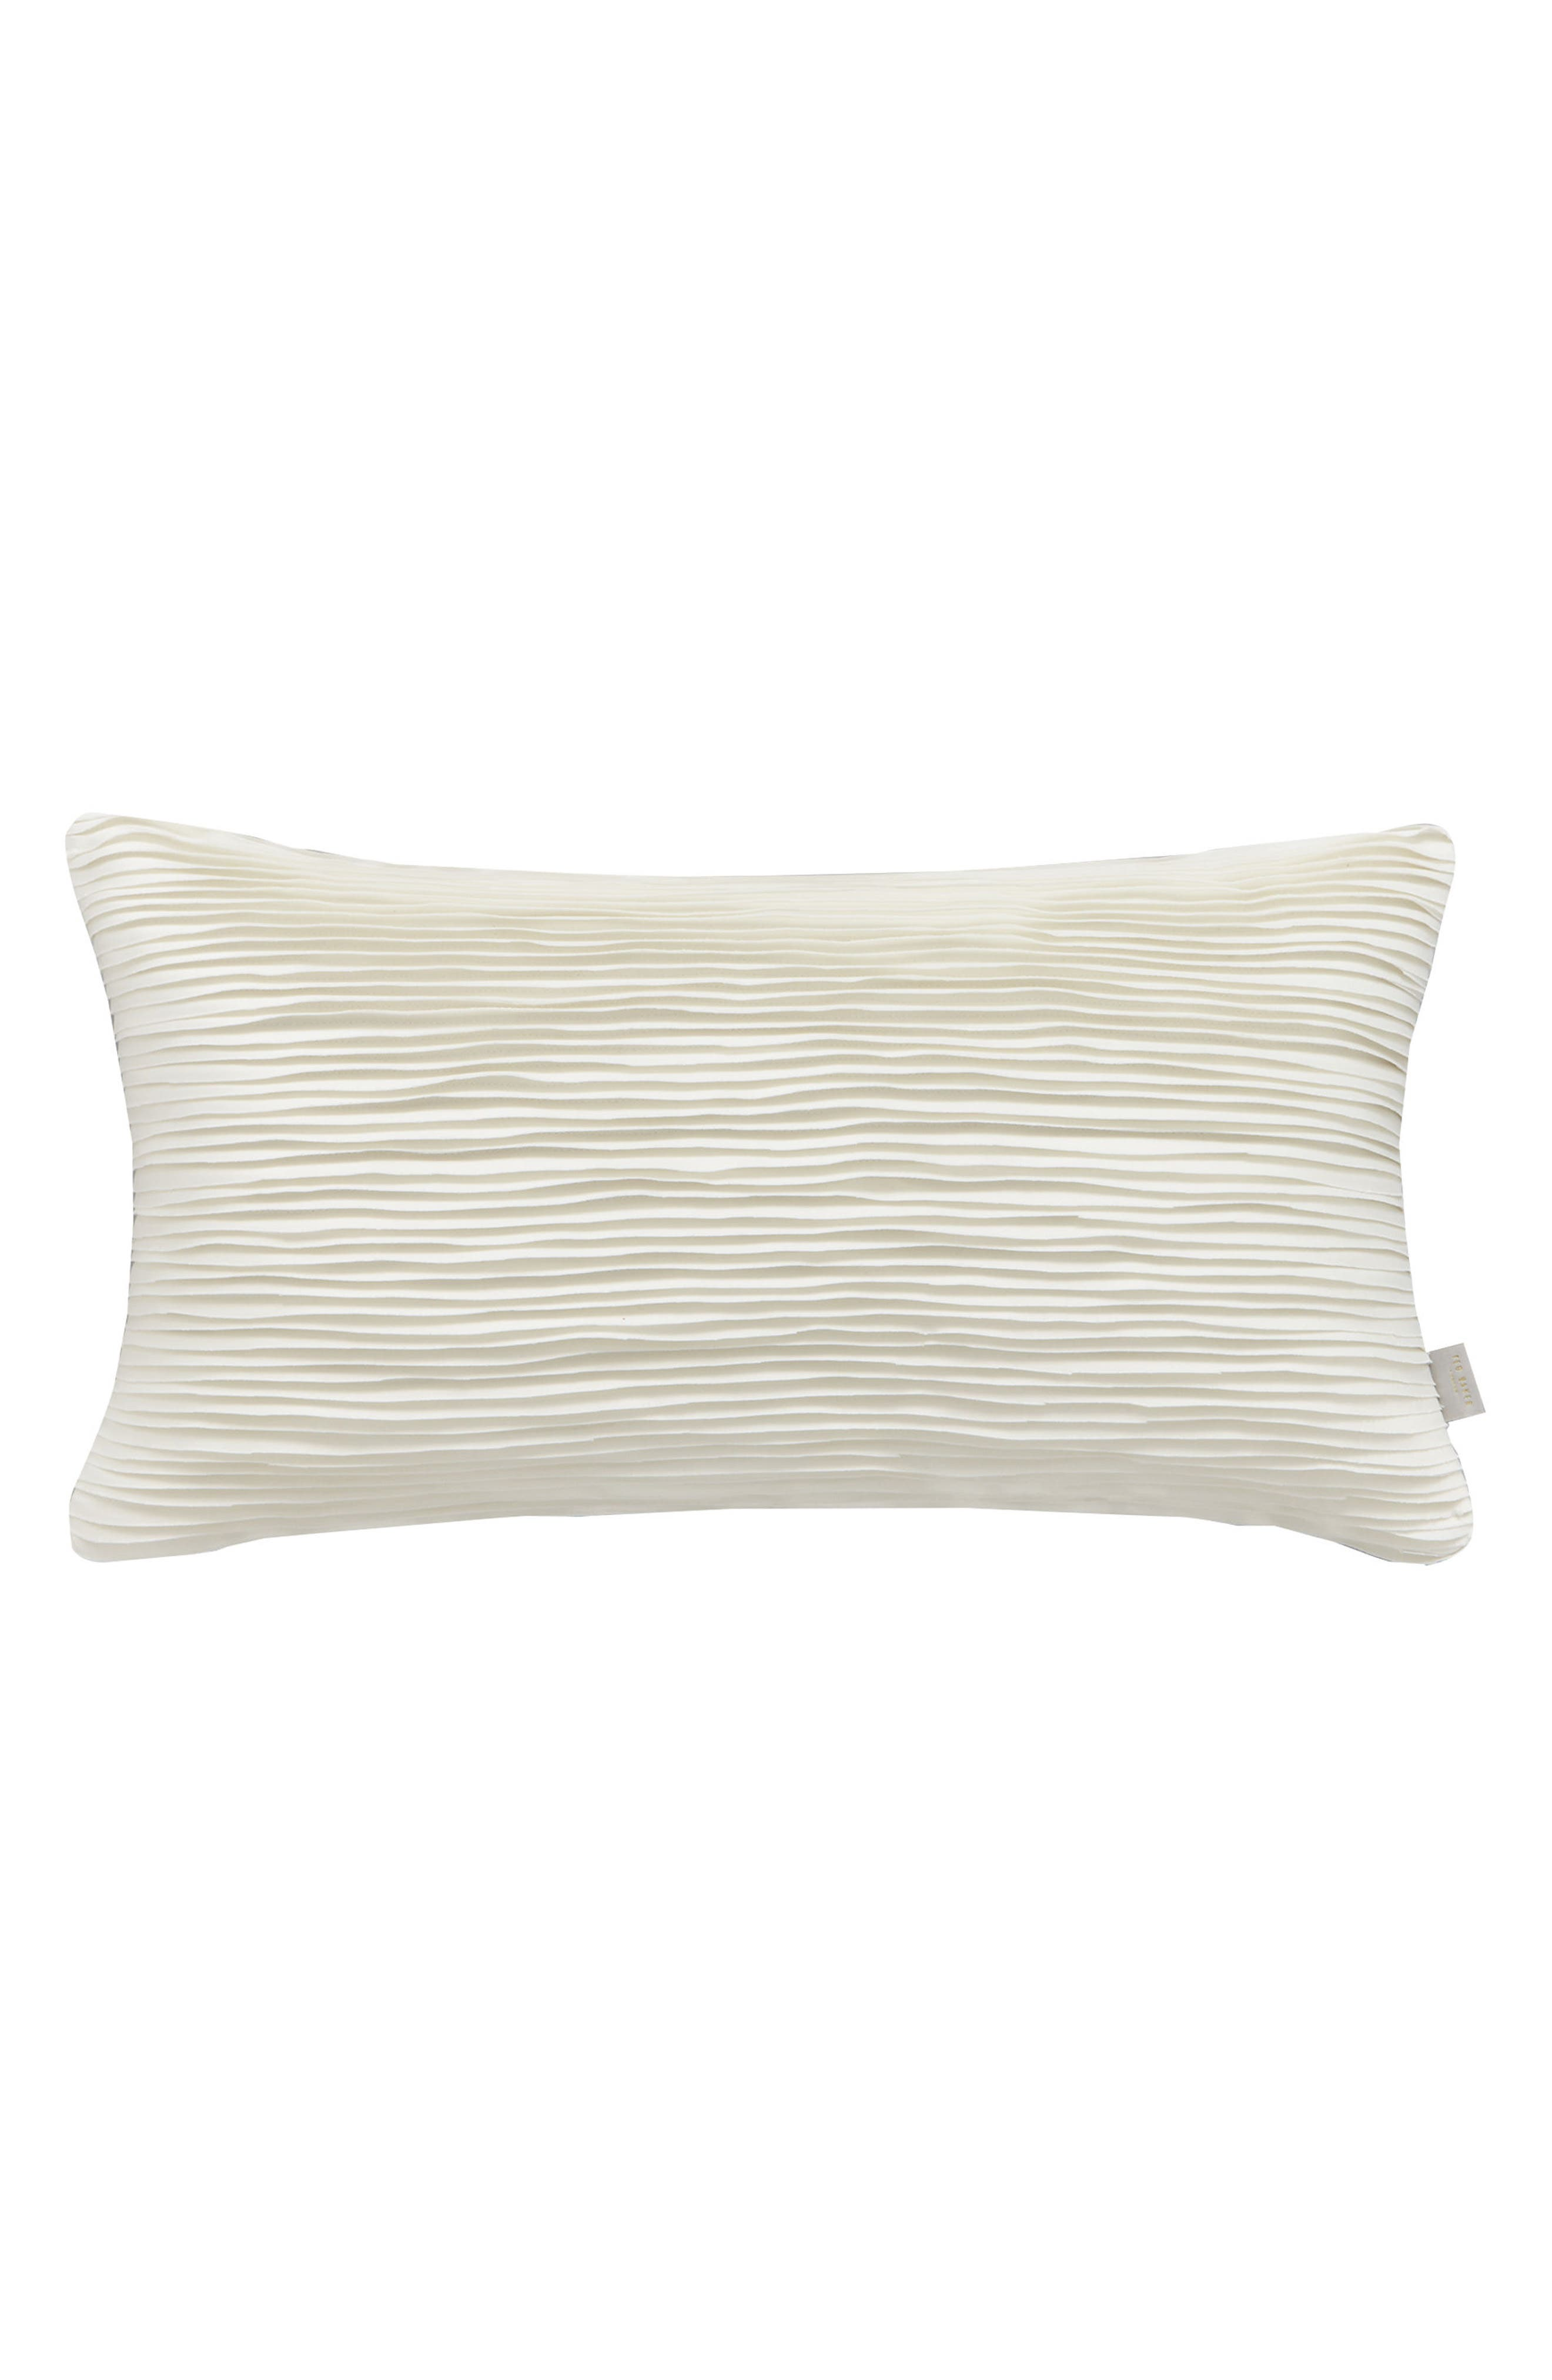 Frayed Accent Pillow,                         Main,                         color, IVORY